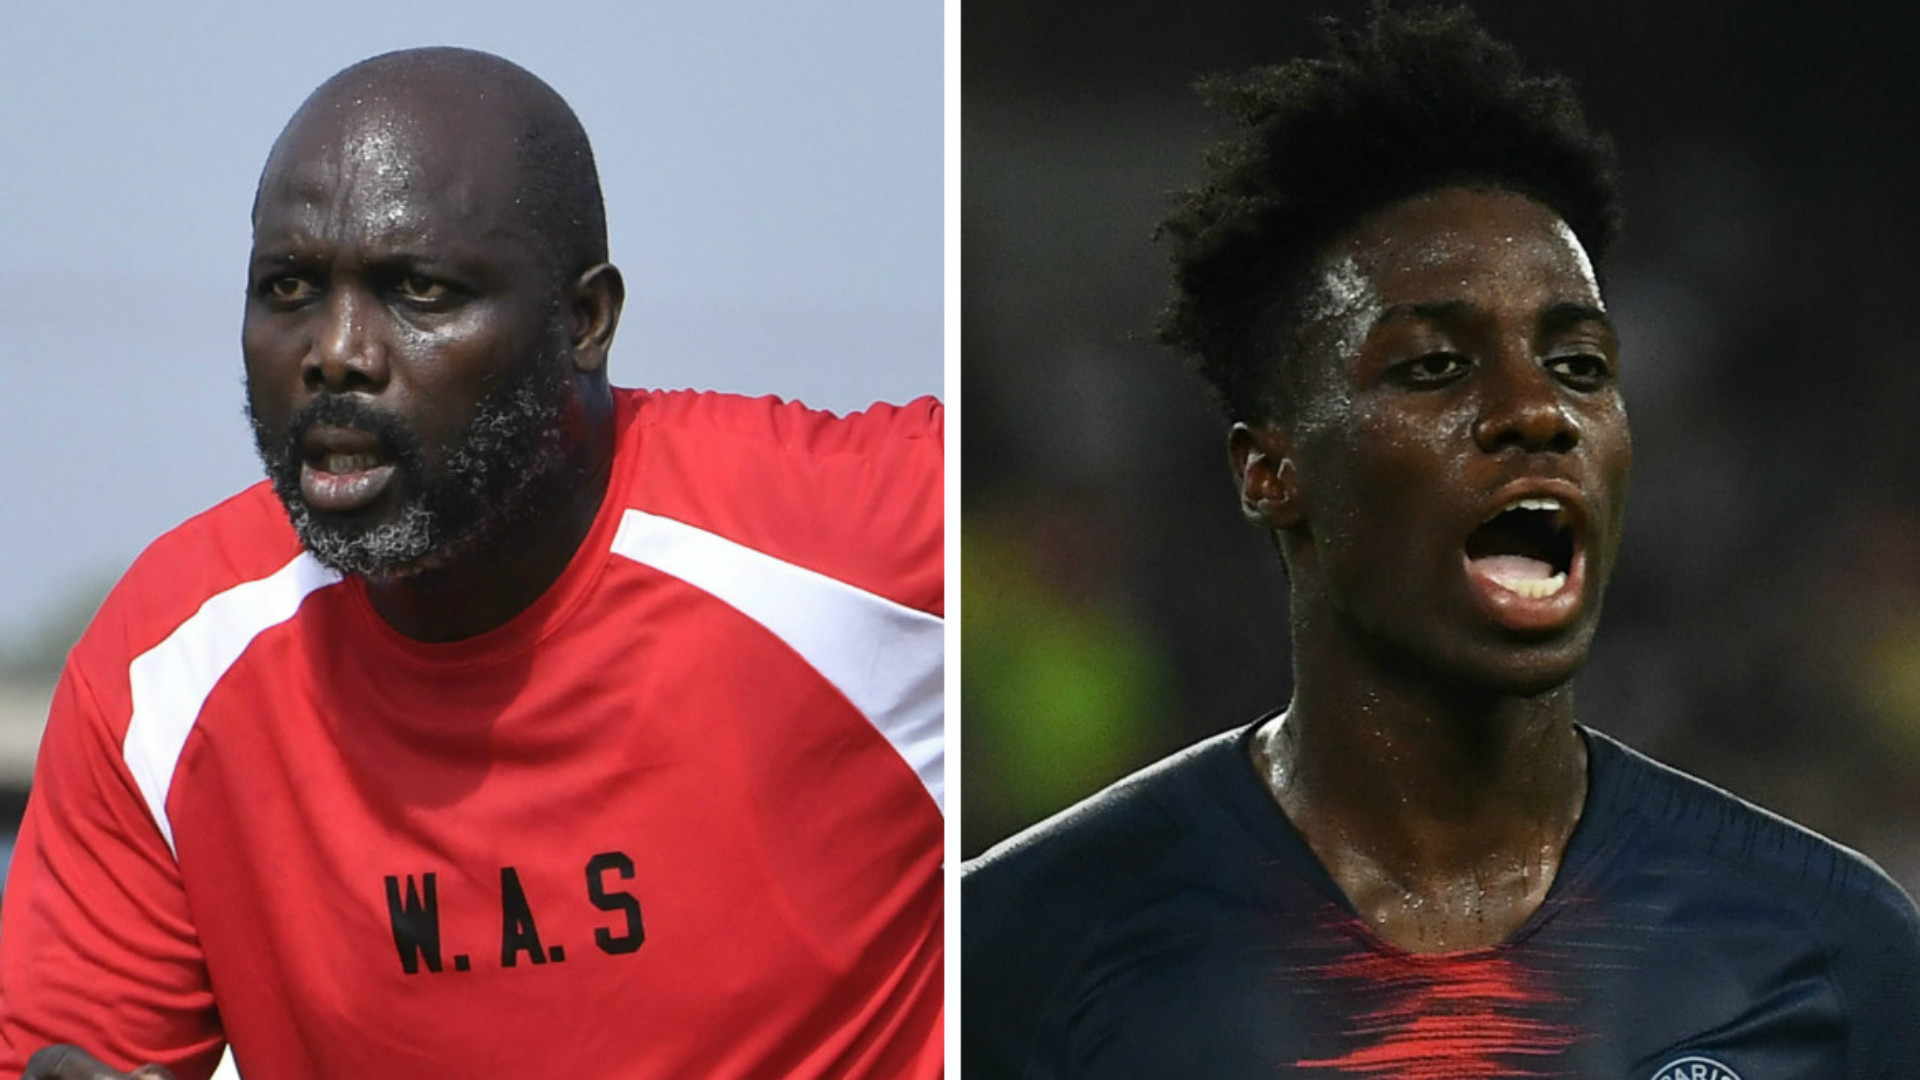 Liberian president George Weah makes football comeback at 51